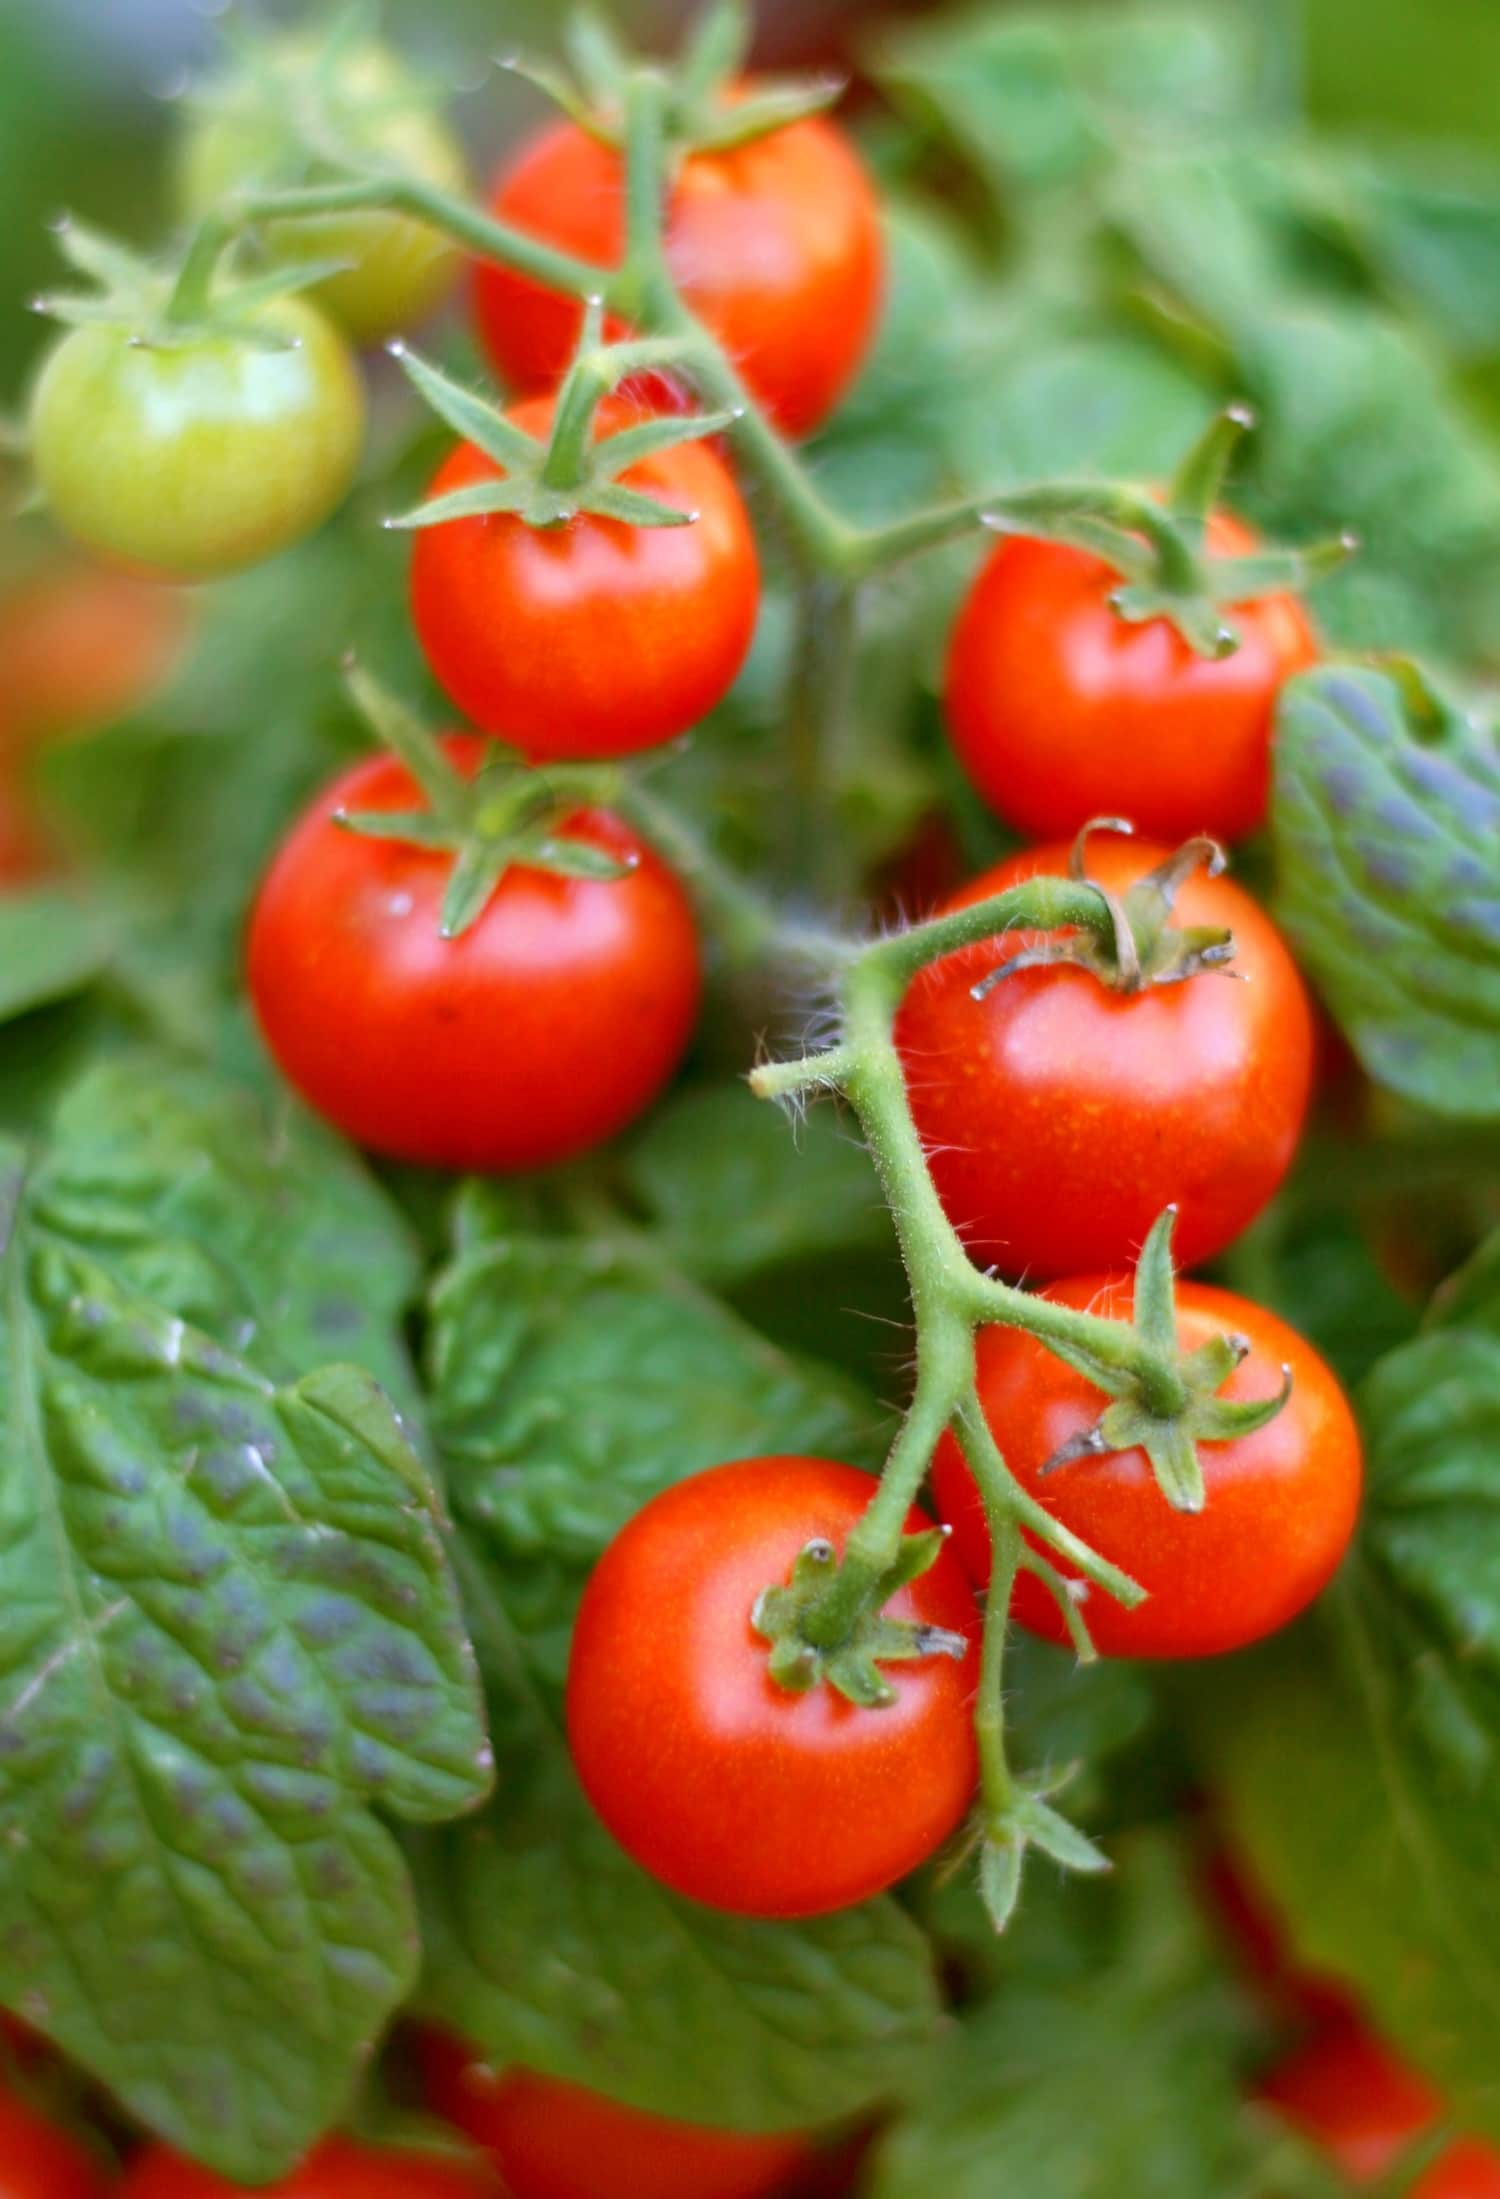 Are Tomato Leaves Actually Poisonous